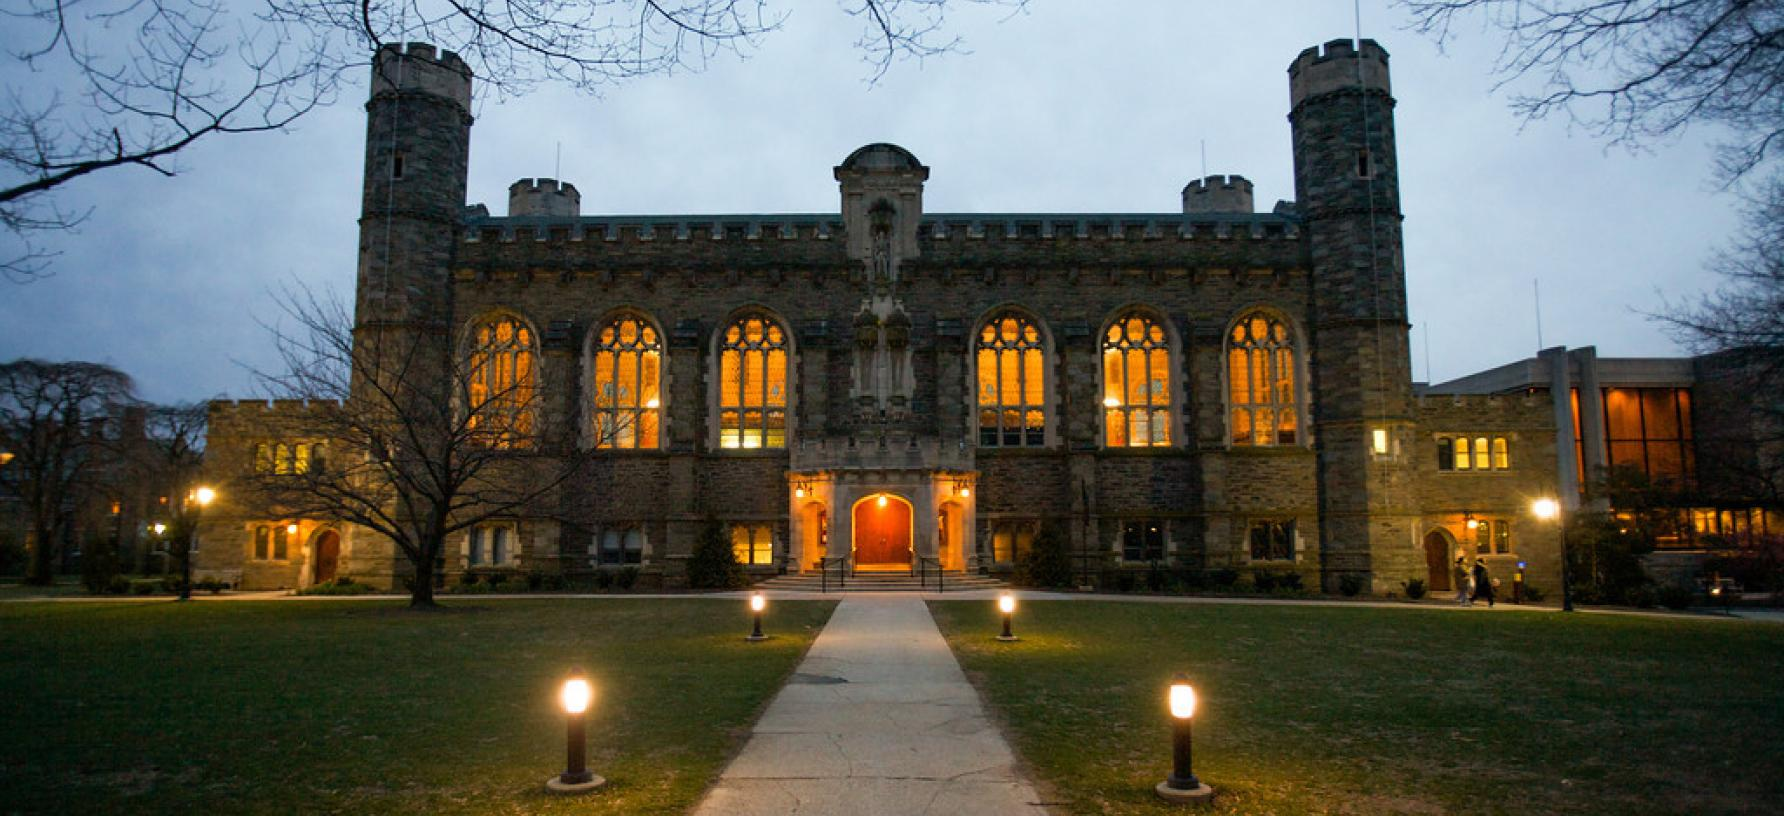 What does it cost to attend Bryn Mawr College?